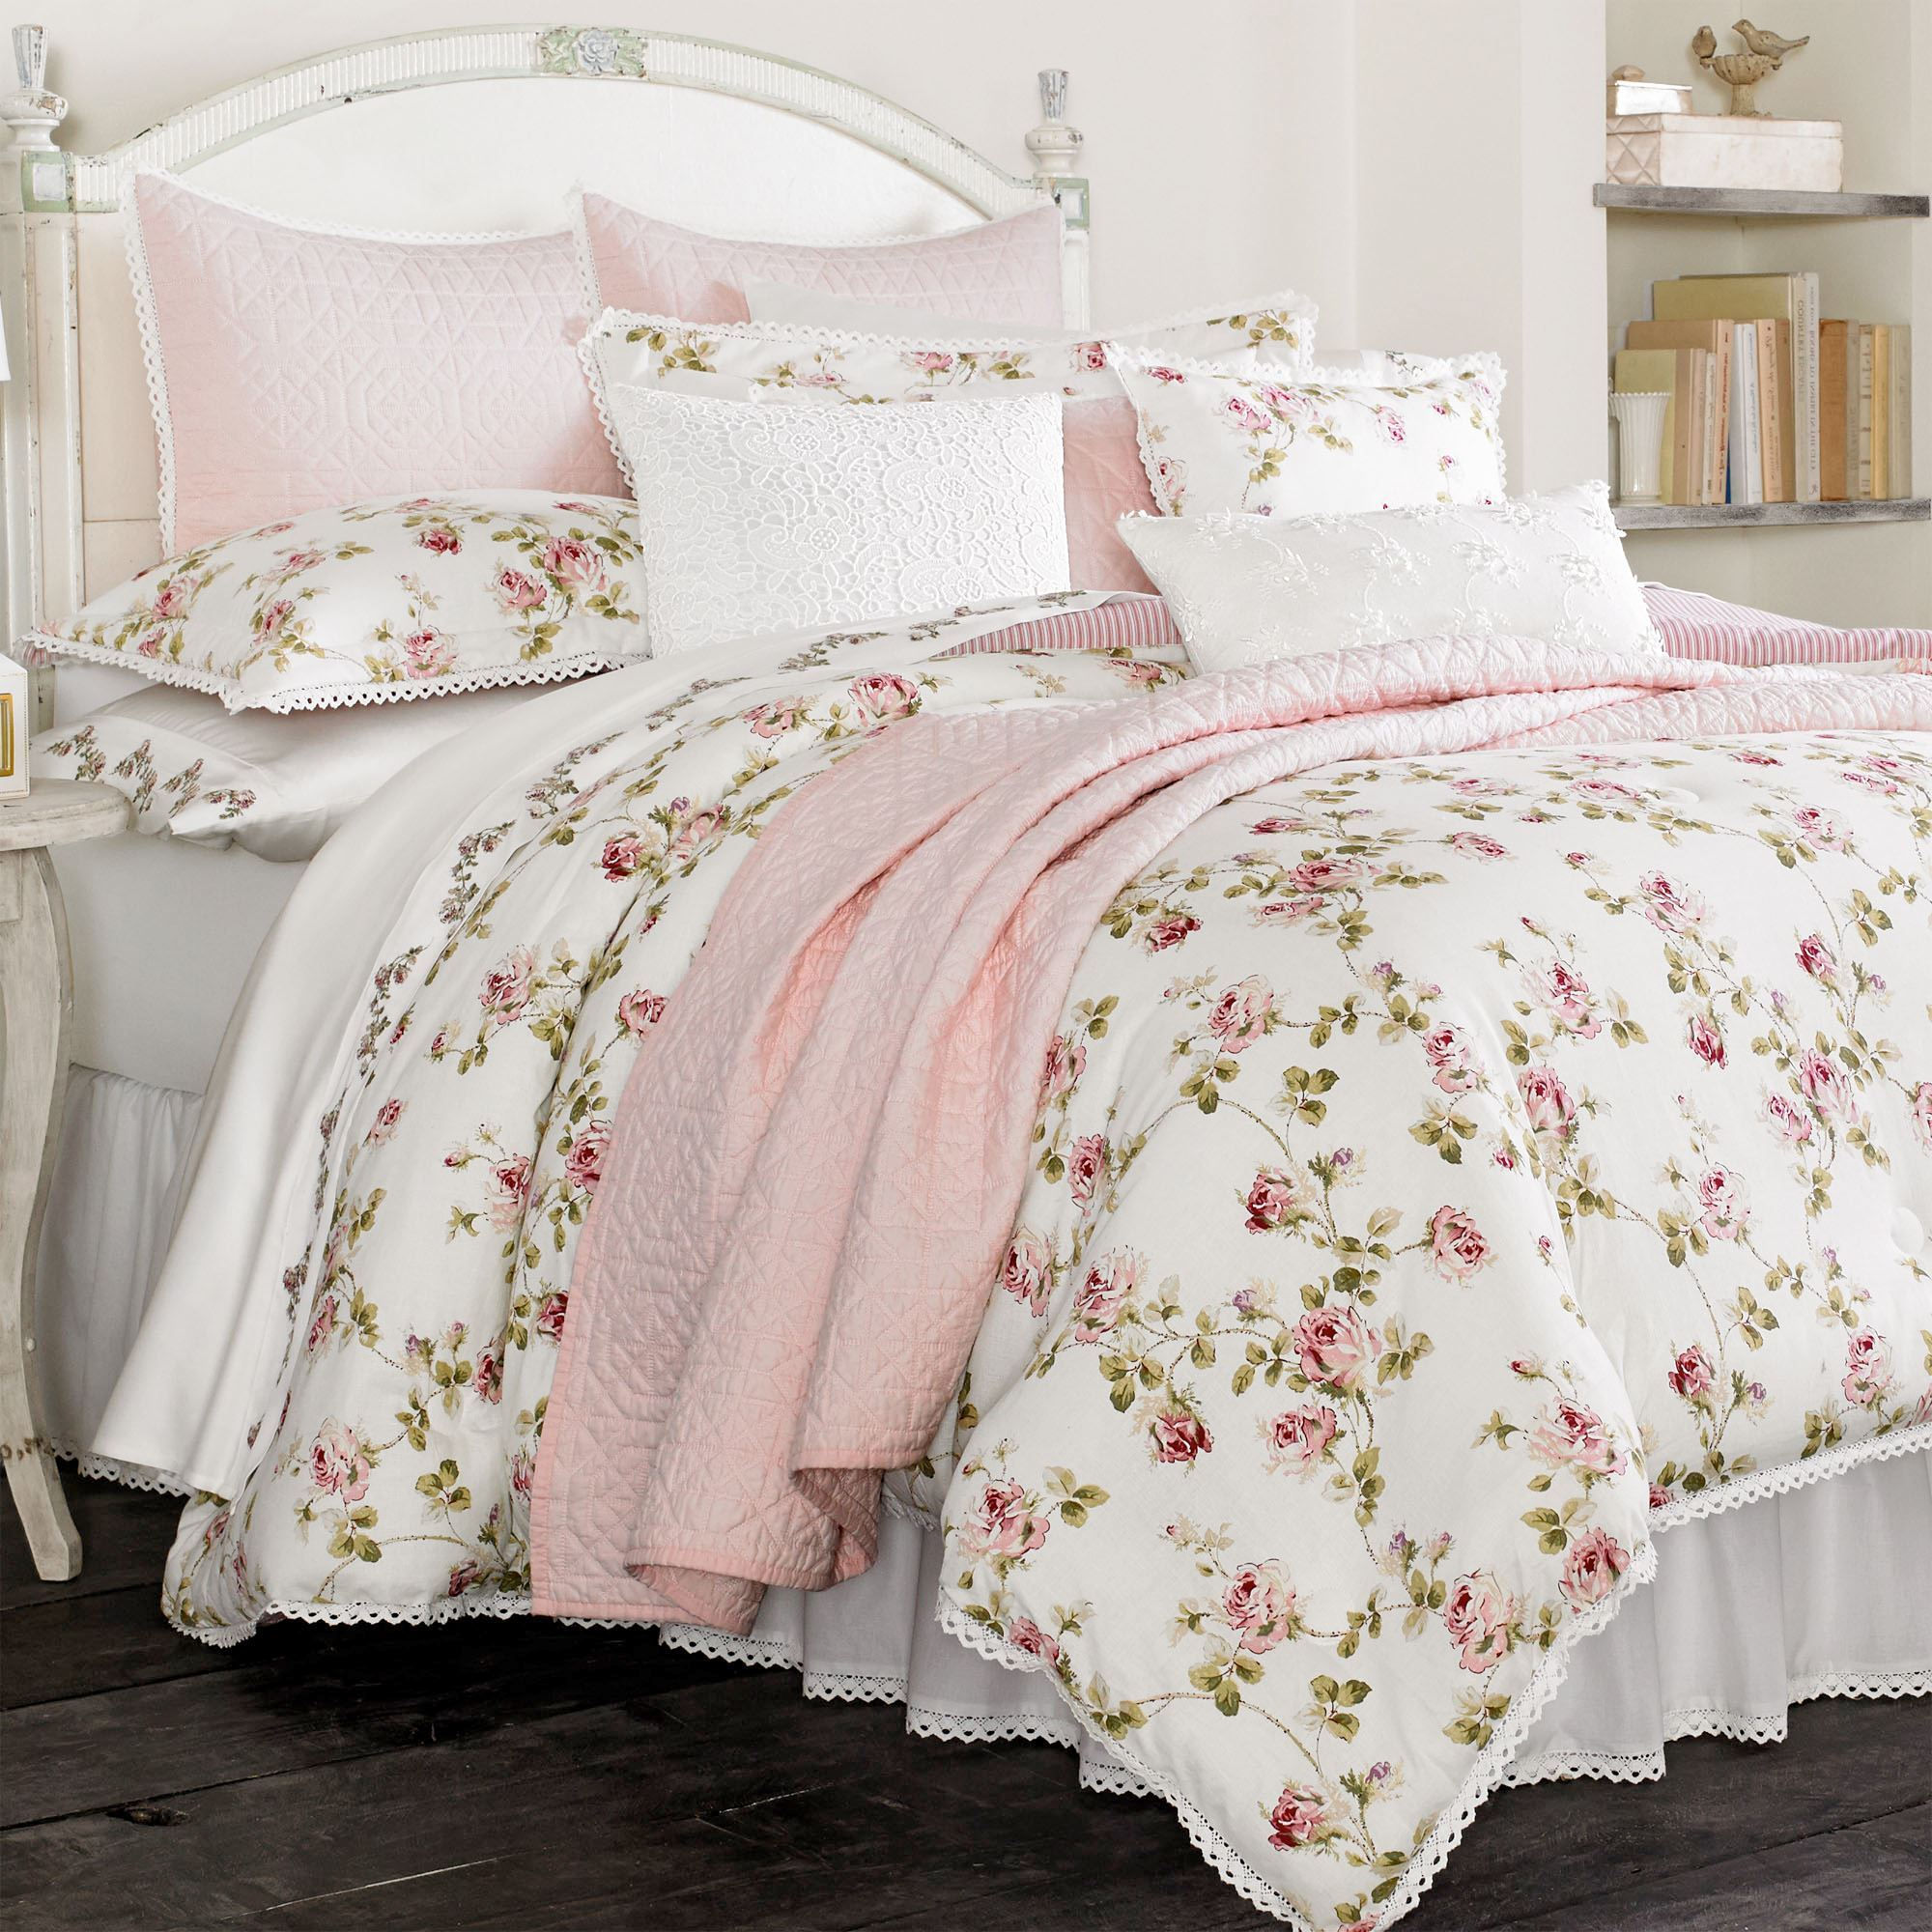 Rosalie pink floral comforter bedding by piper wright - Bedroom sheets and comforter sets ...